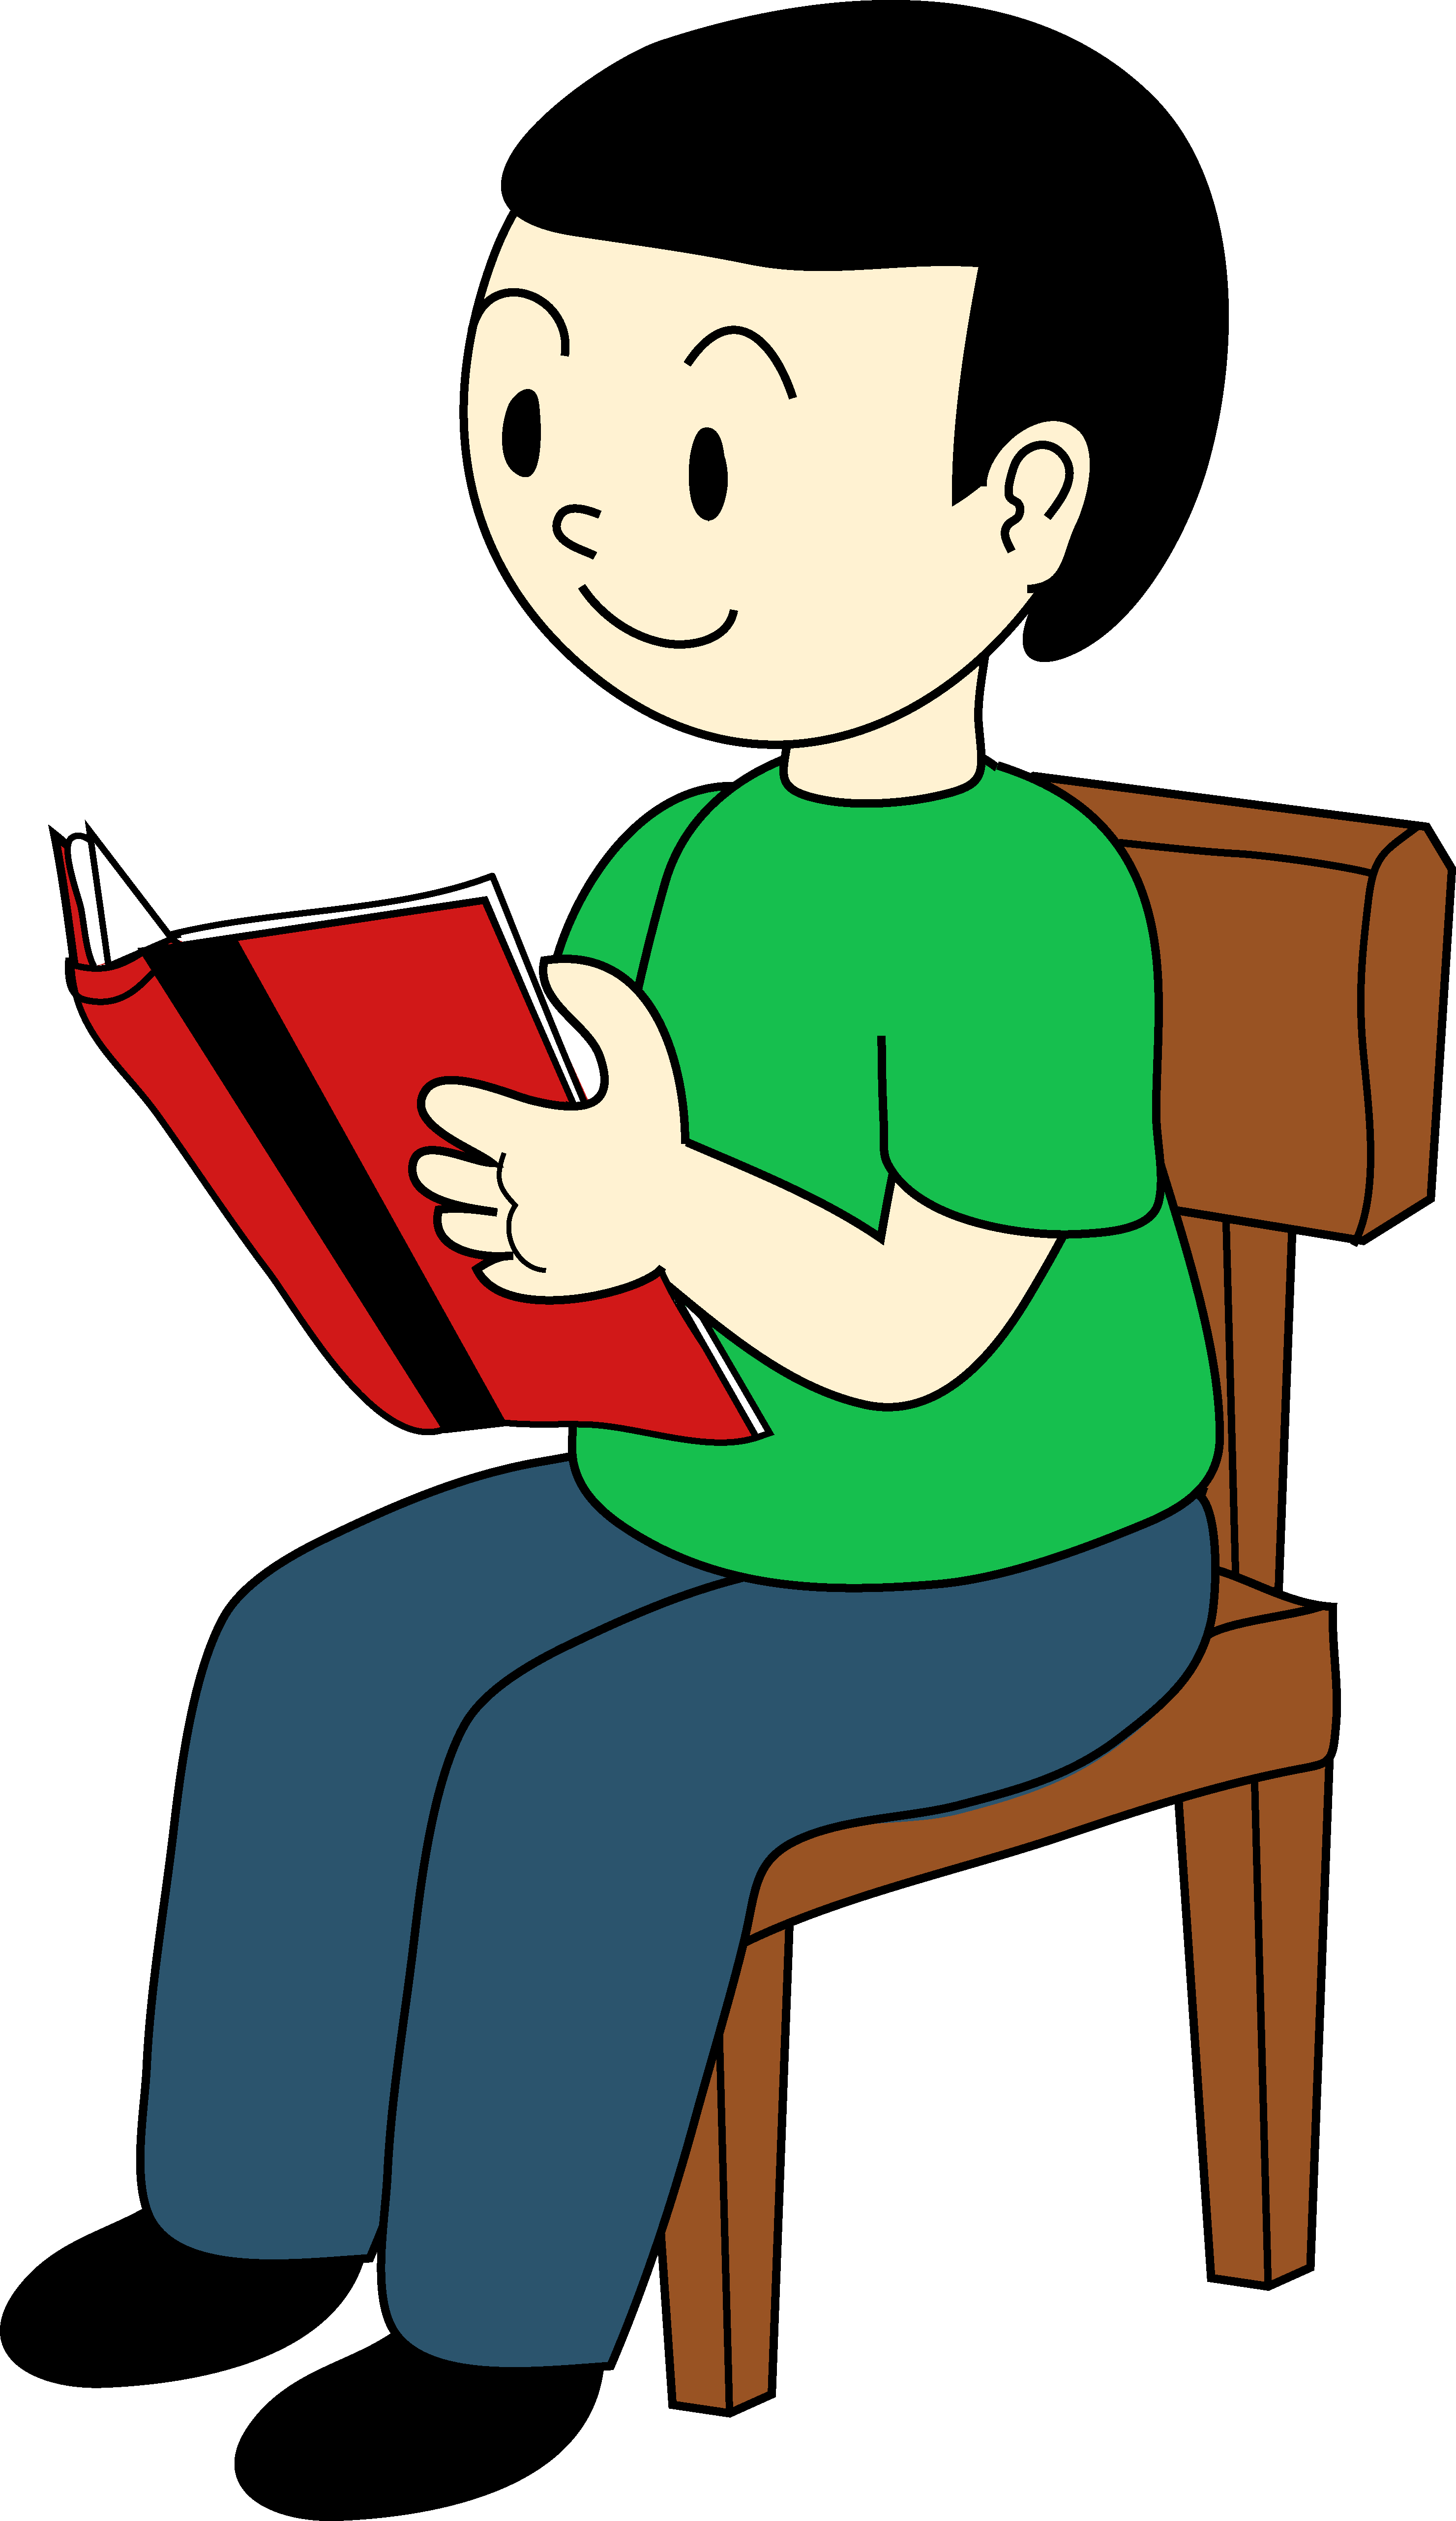 Animated Of A Chair In Person Clipart - Clipart Kid